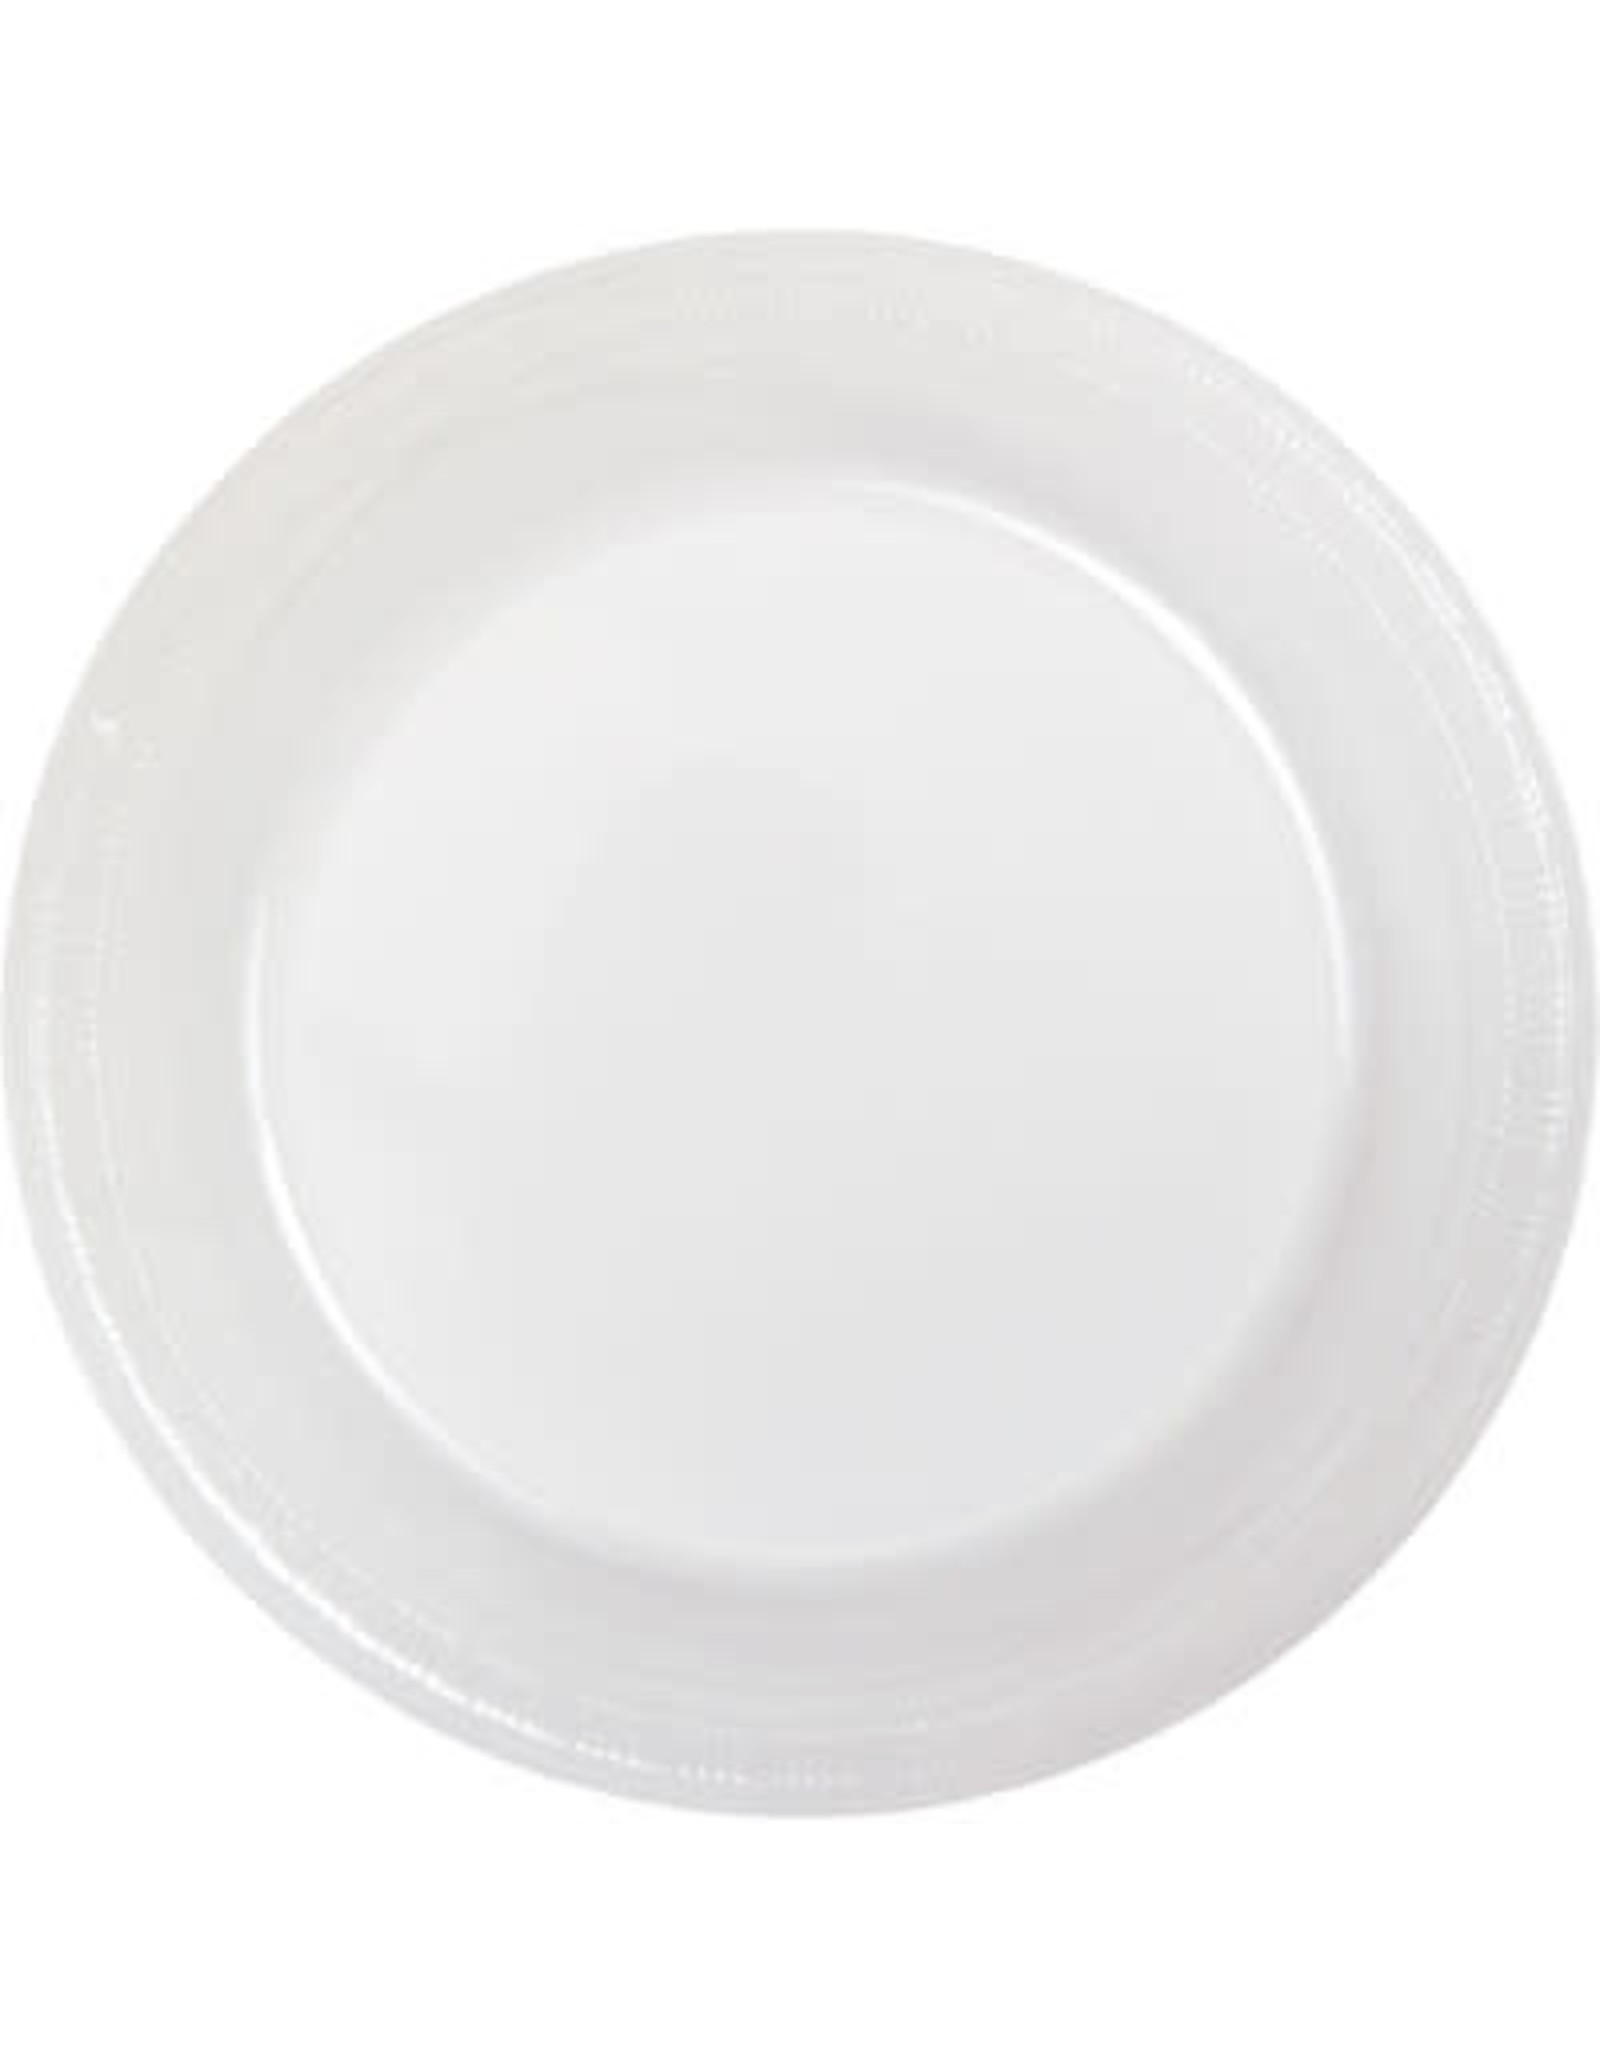 Touch of Color CLEAR PLASTIC DESSERT PLATES